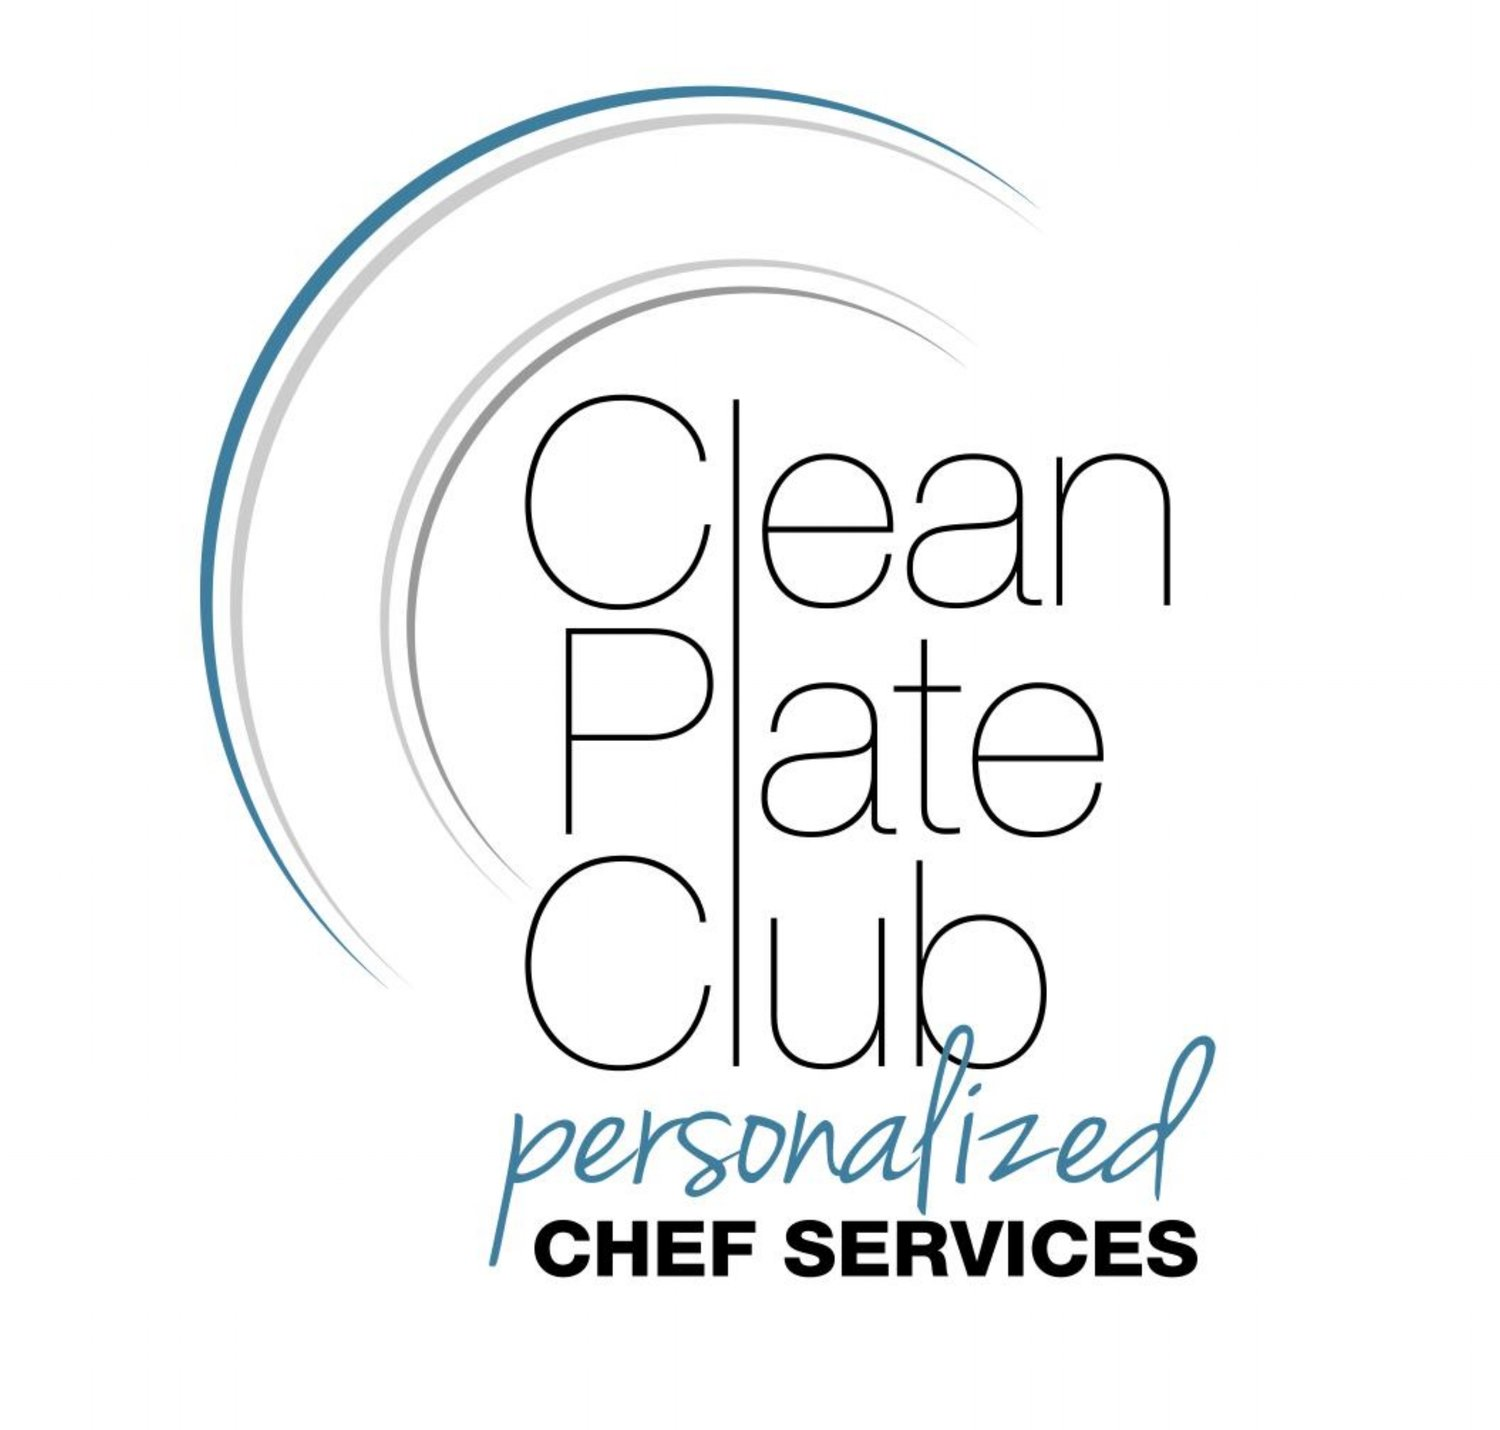 The Clean Plate Club Atl Personalized Chef Service